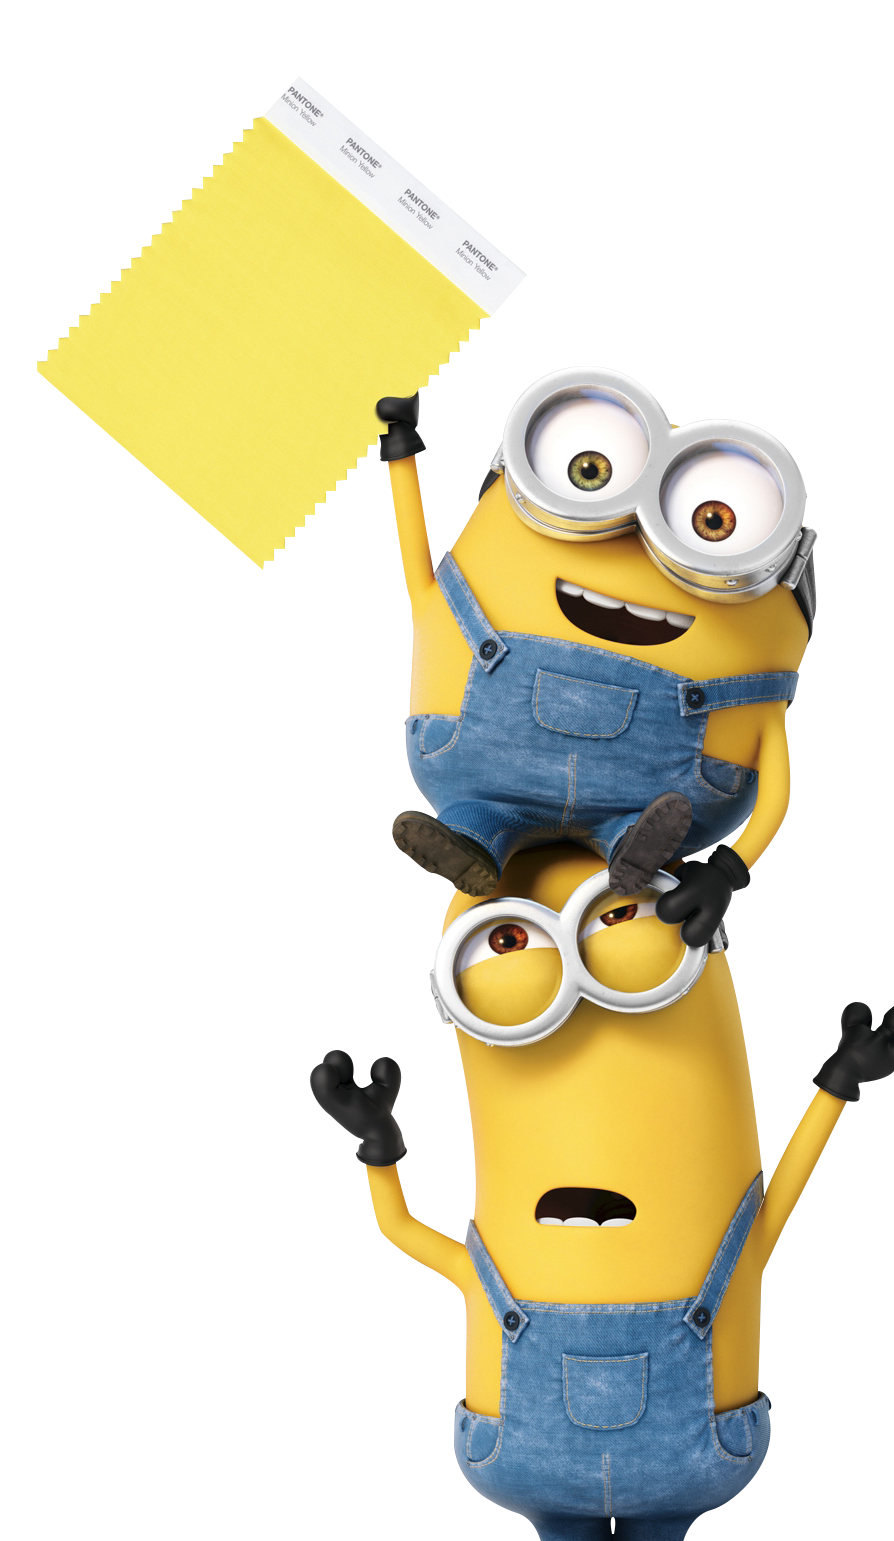 Minions 29 imagens png minions pinterest minion s - Minions funny images ...